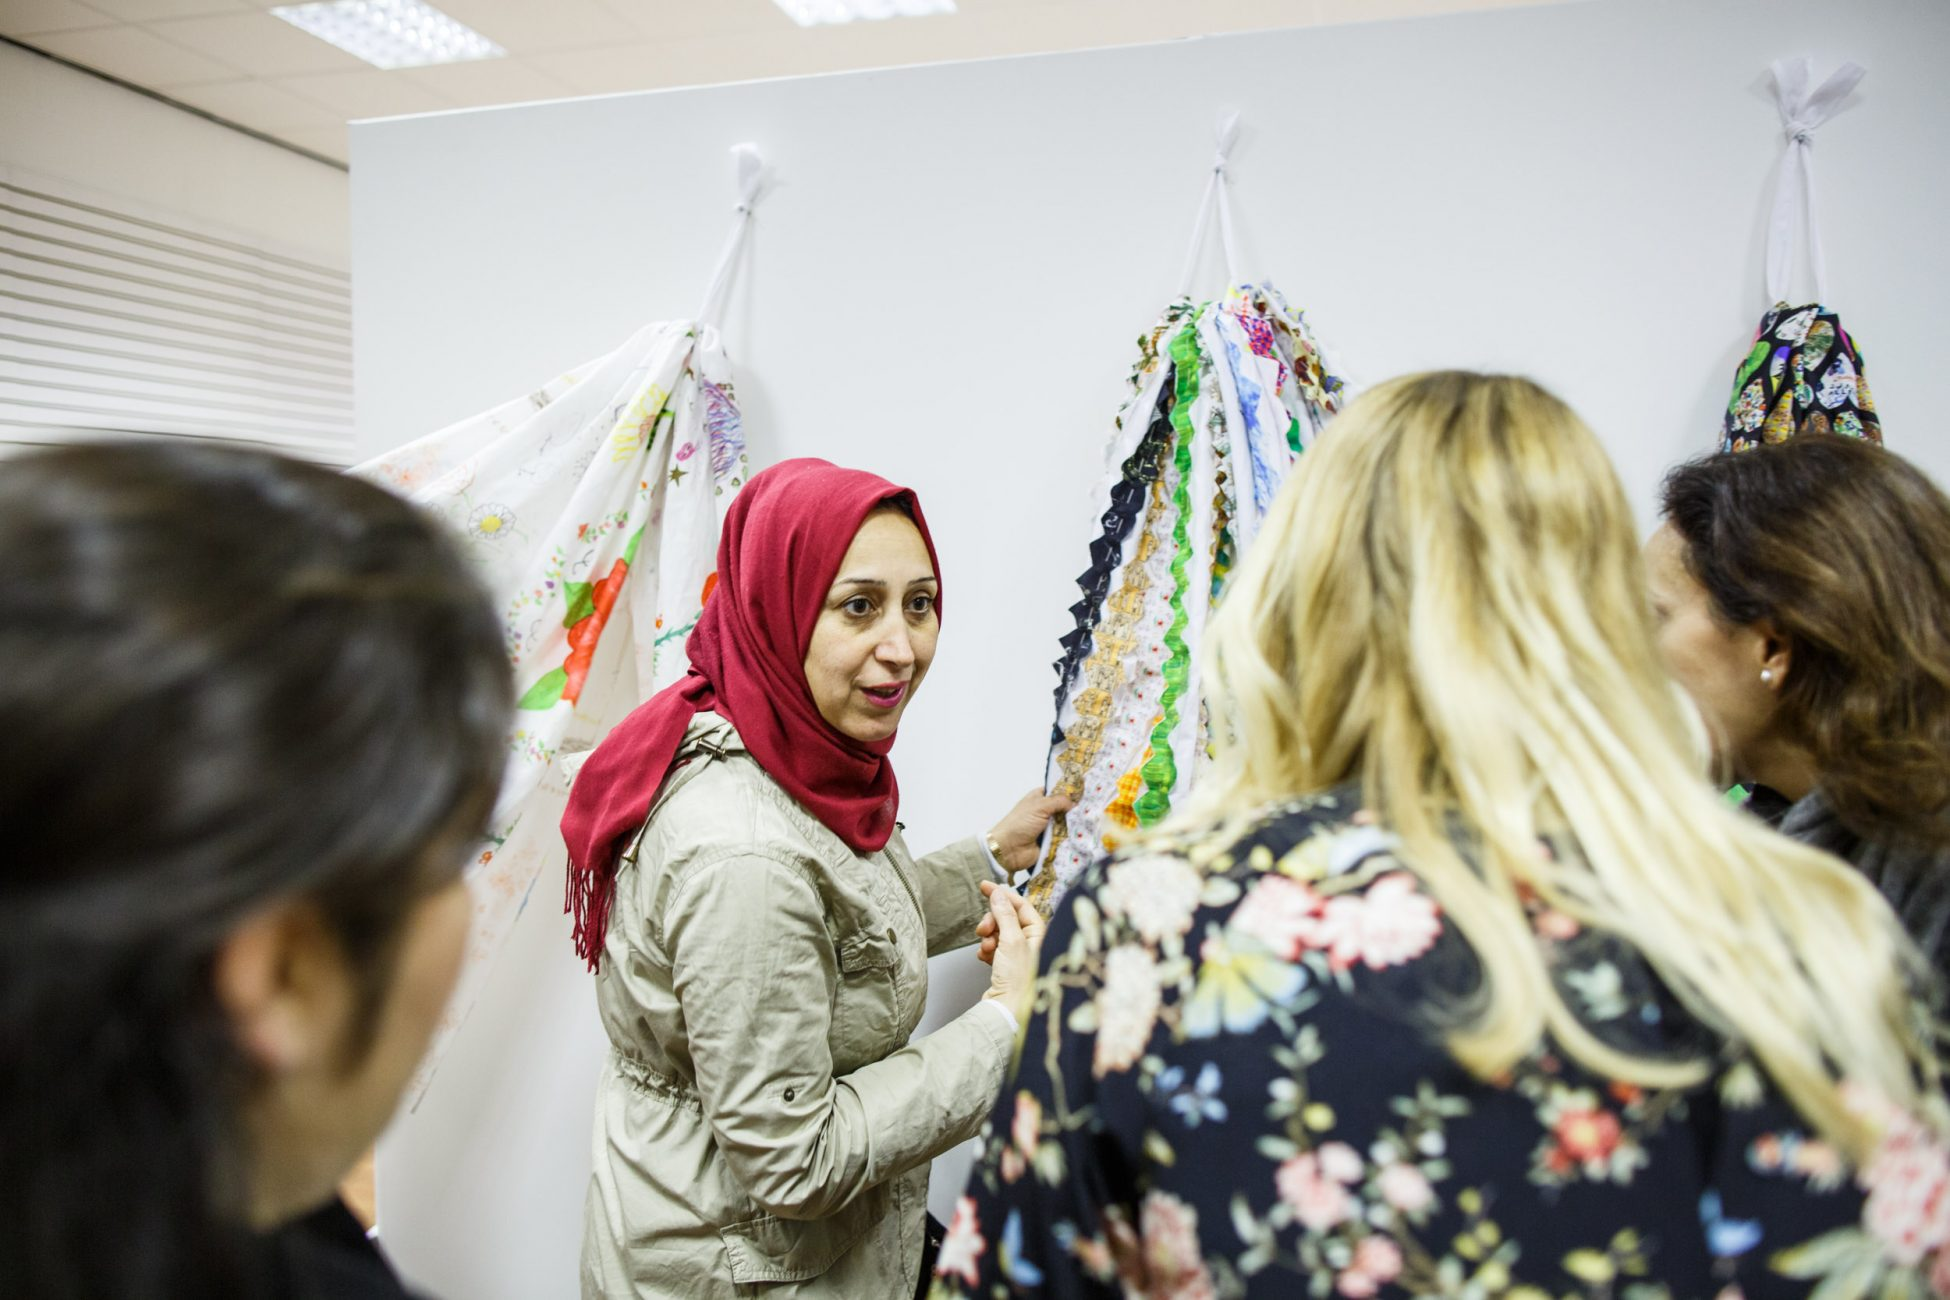 Photo of a gallery showing three sets of colourfully decorated fabric hanging down against a white wall. A woman wearing a beige coat and red hijab is holding one of the pieces of fabric and talking to another group of women as if talking about the fabric.